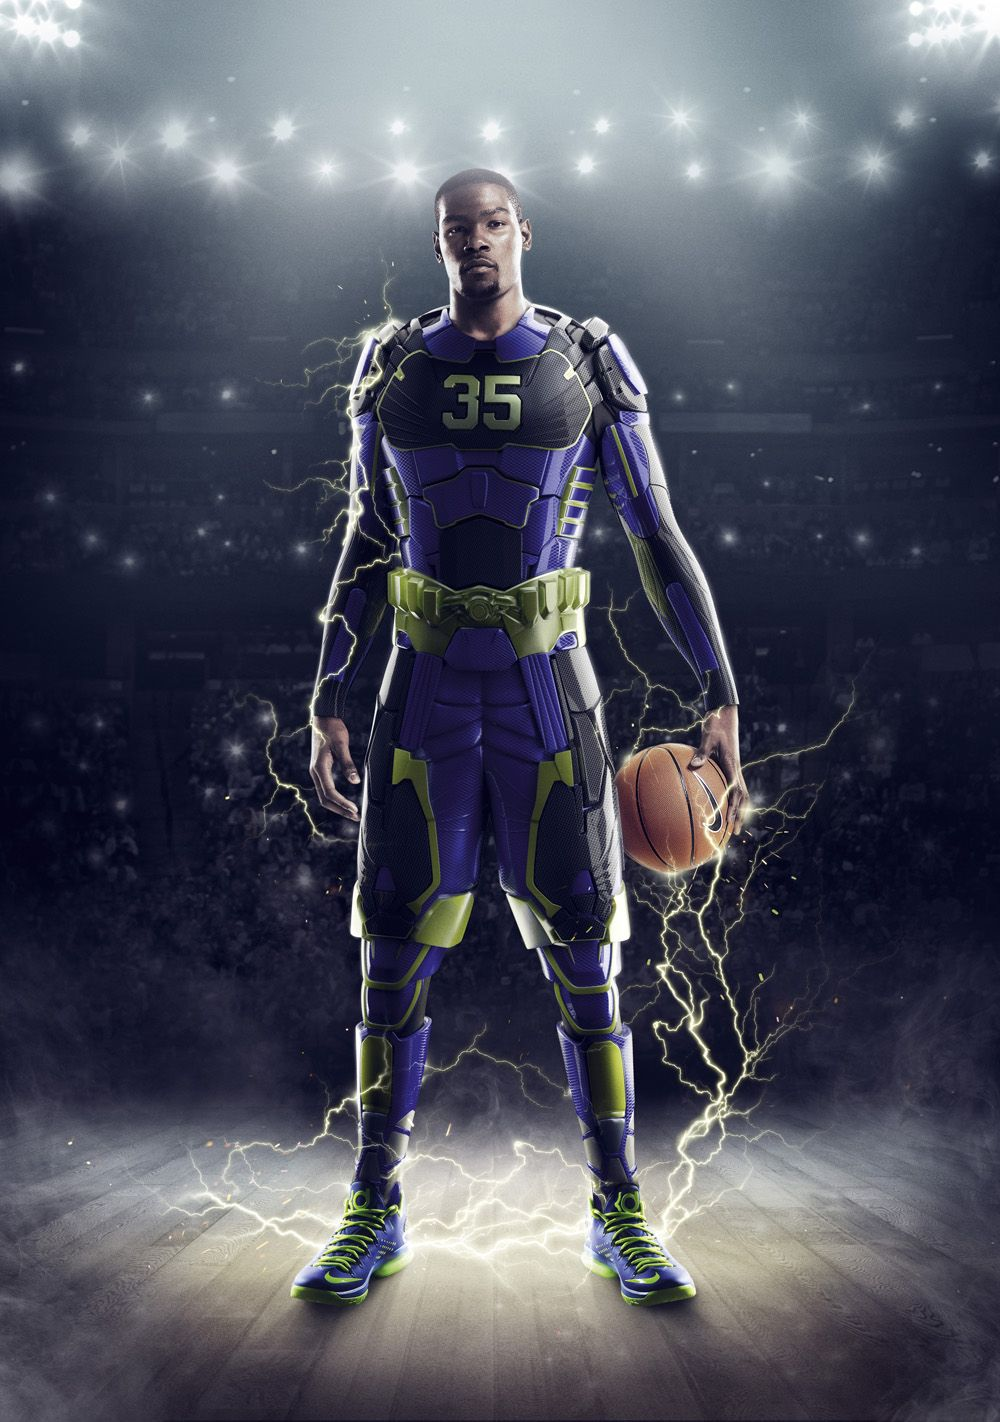 lebron james basketball shoes kevin durant youth shoes